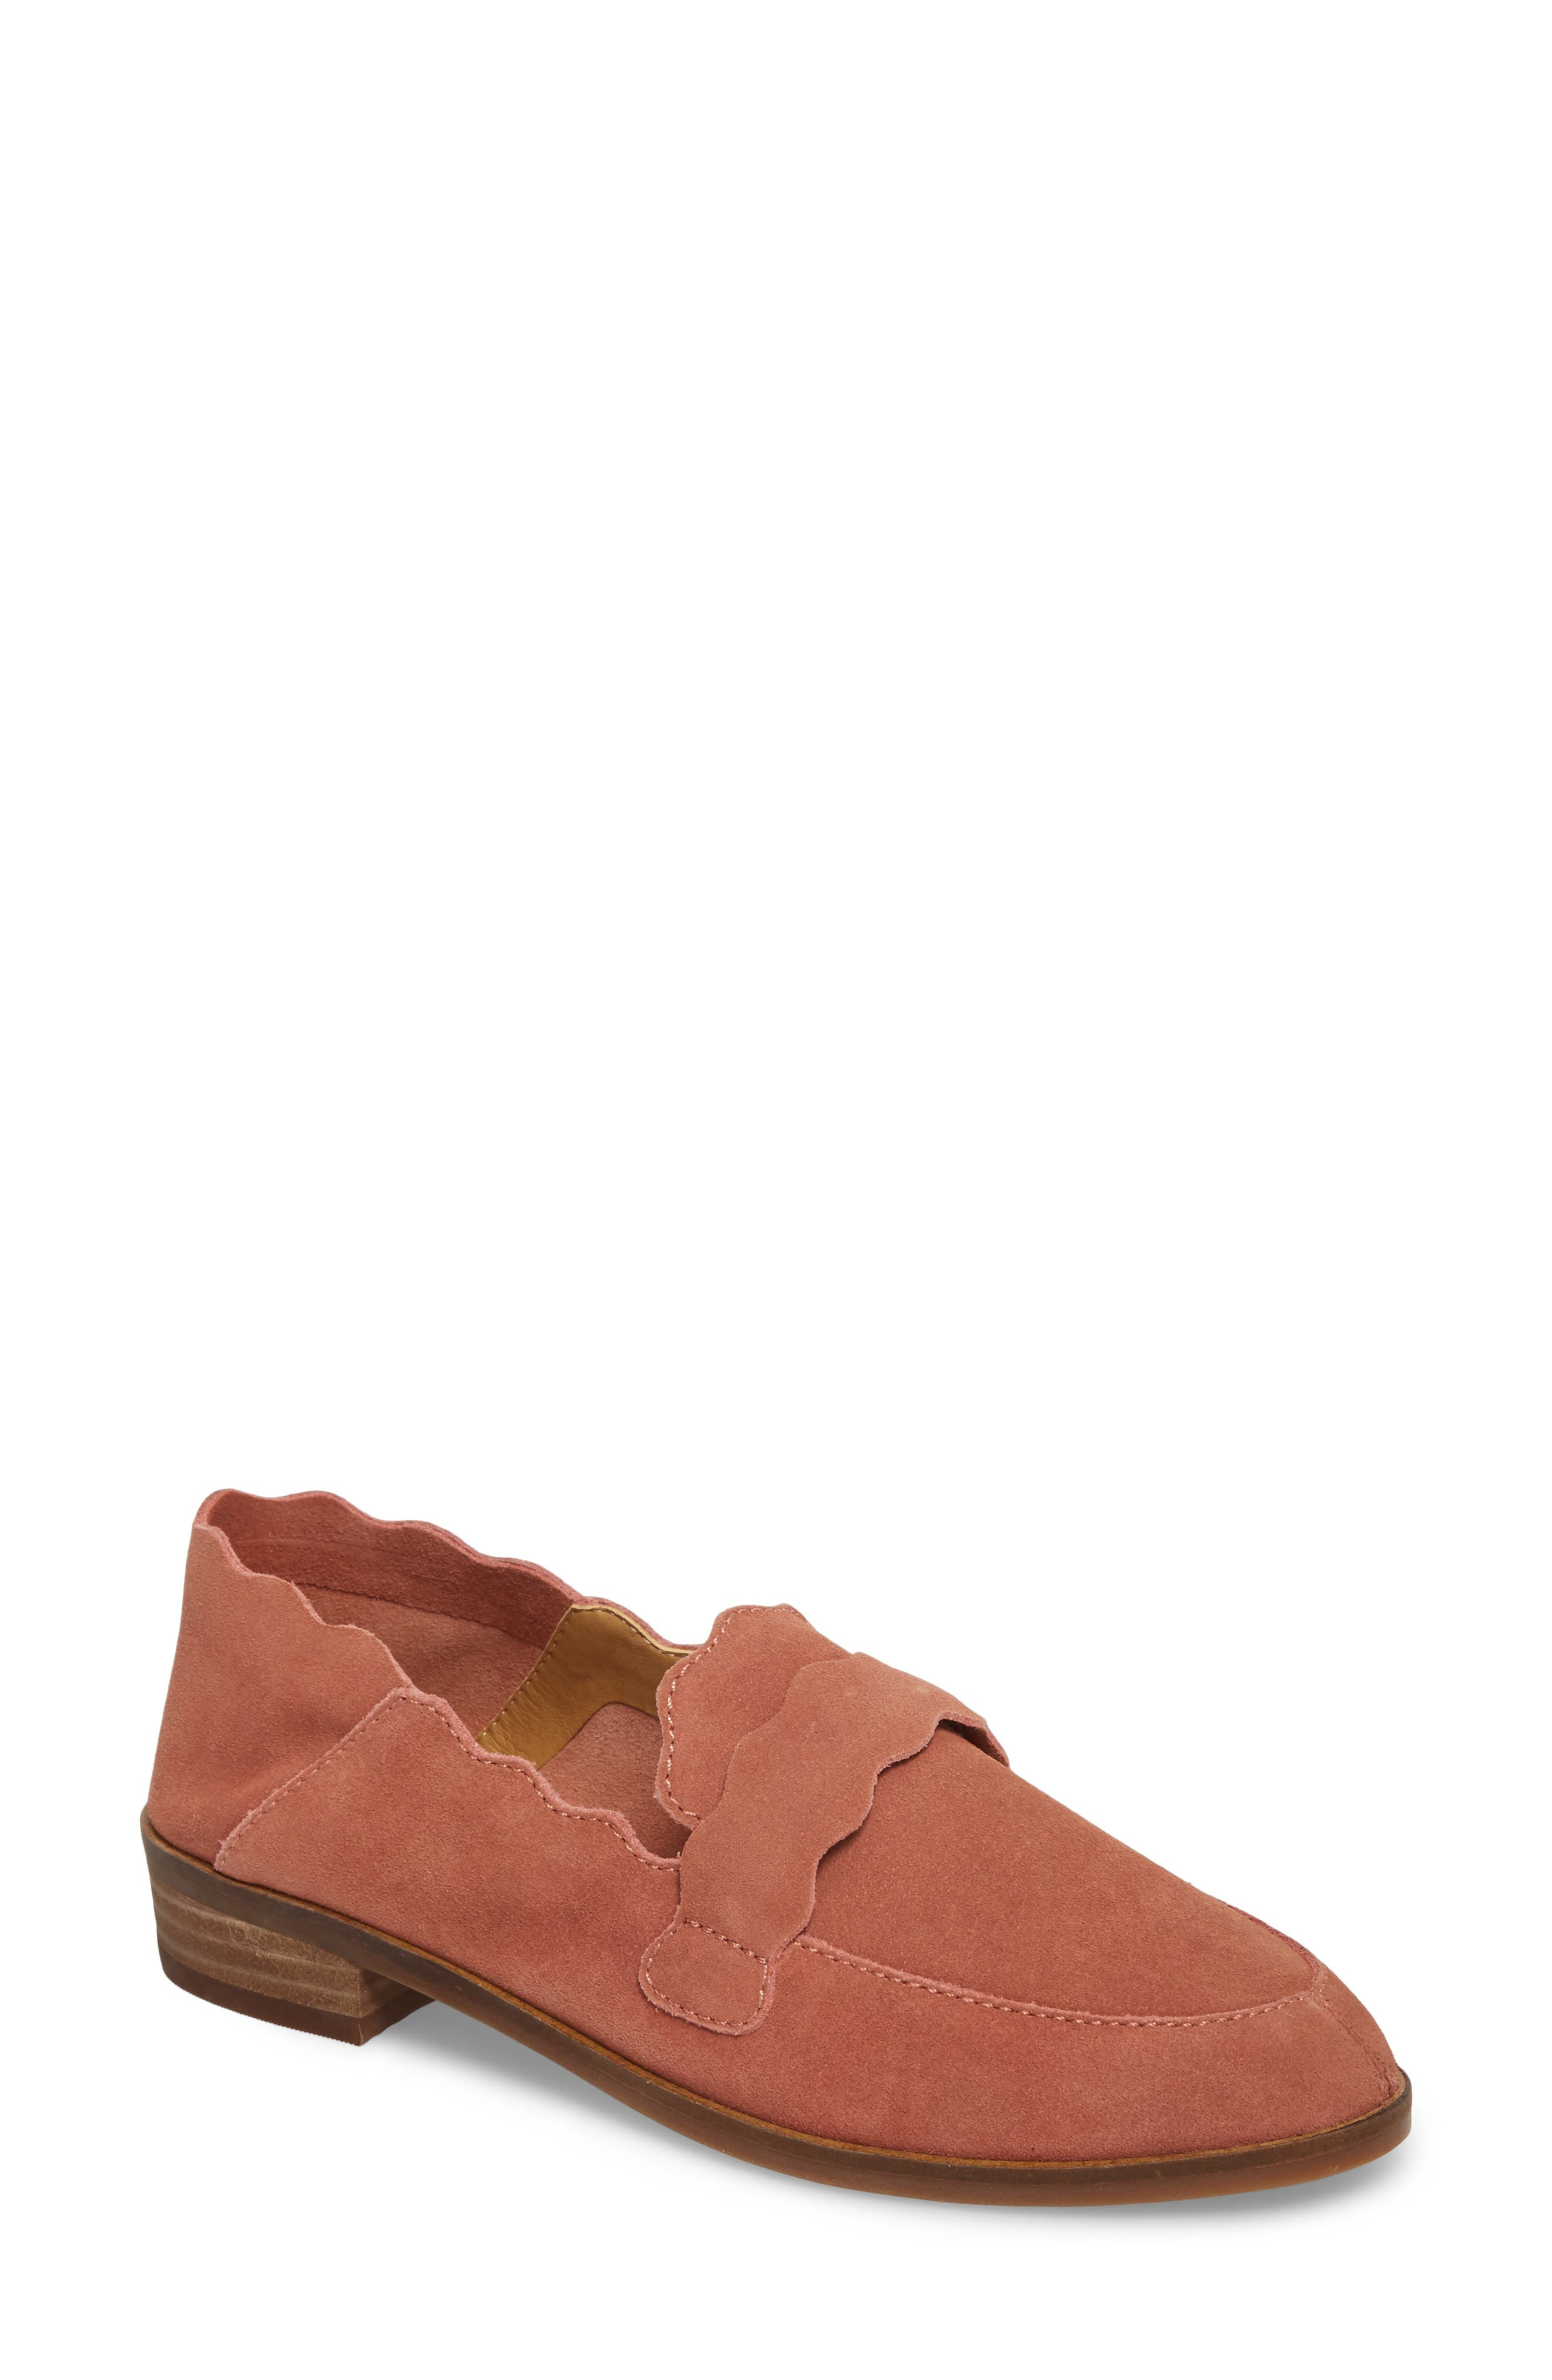 Callister Loafer,                             Main thumbnail 5, color,